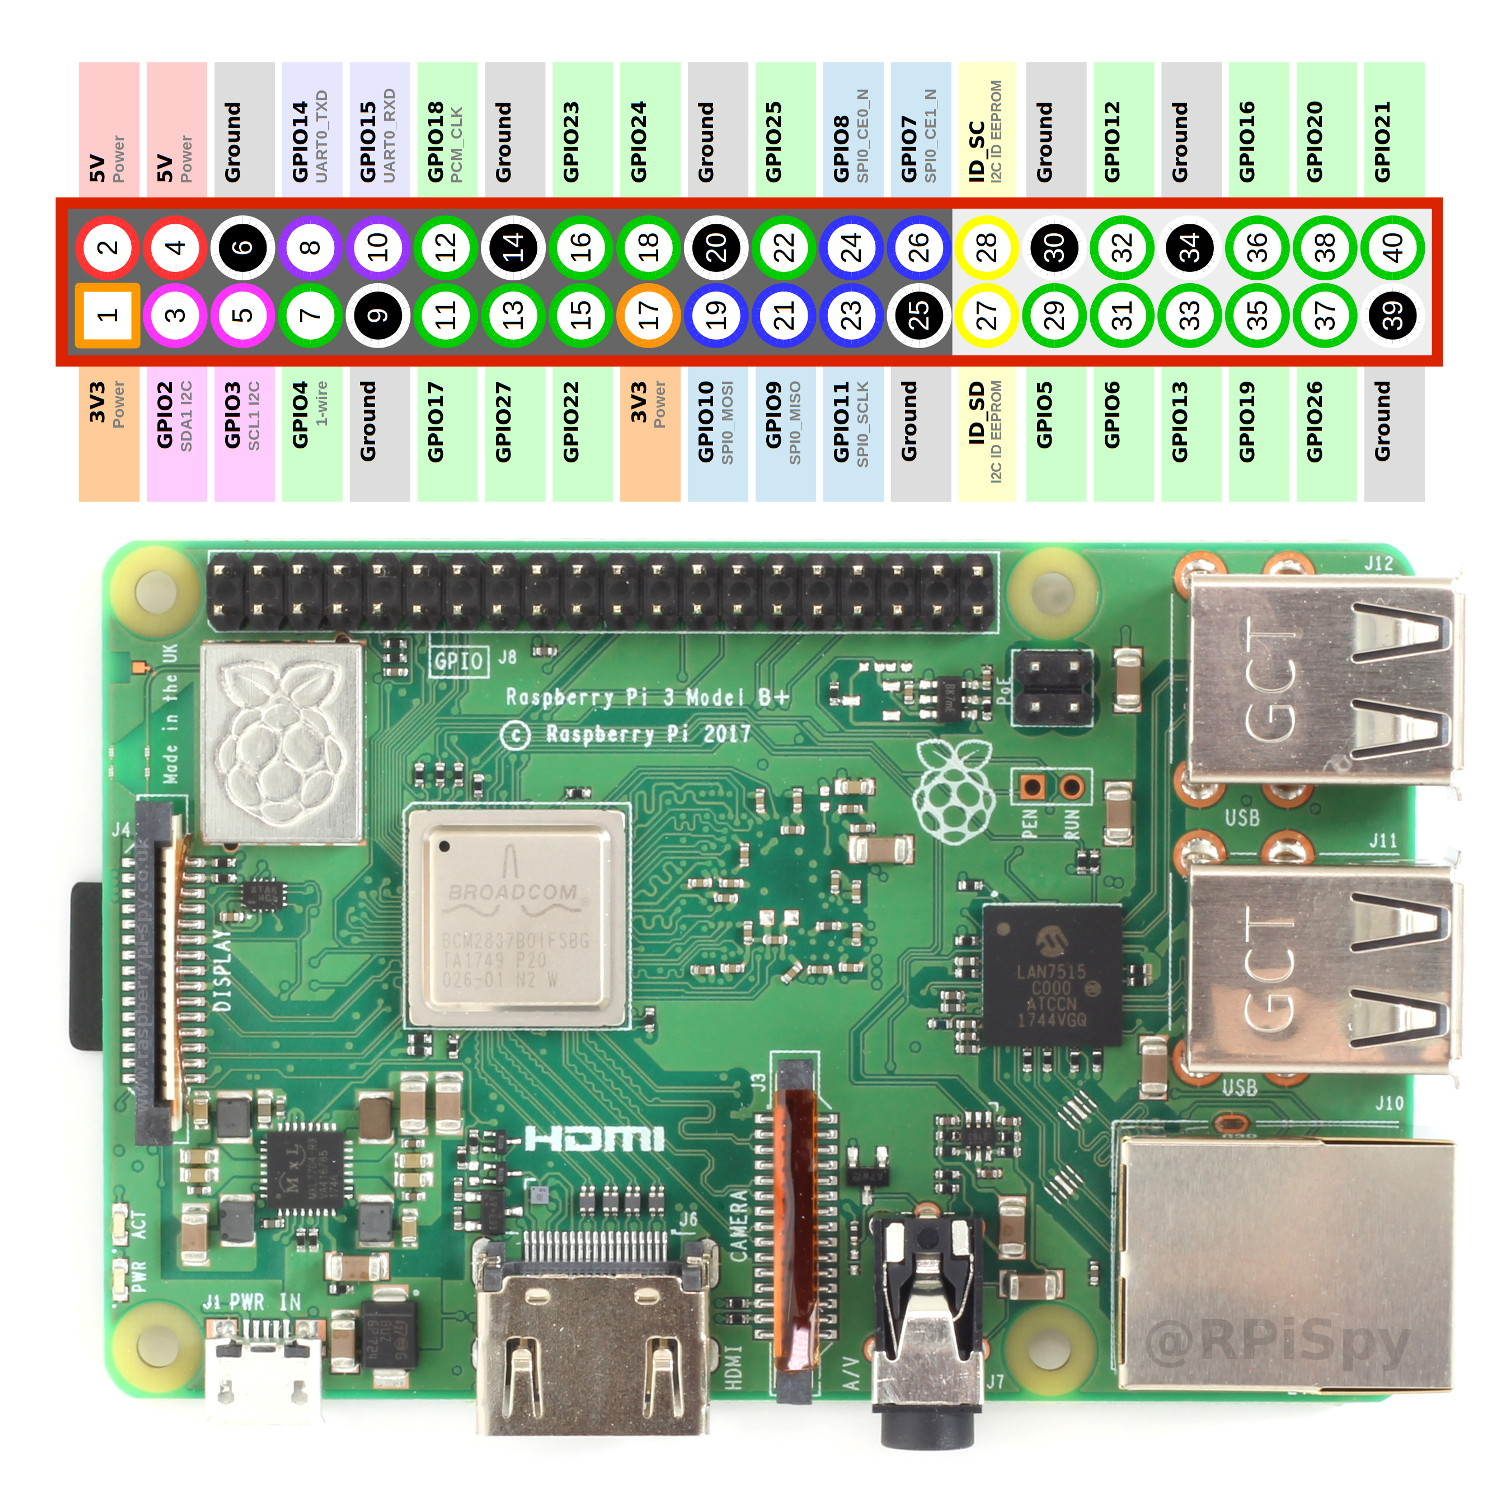 Simple Guide to the Raspberry Pi GPIO Header - Raspberry Pi Spy